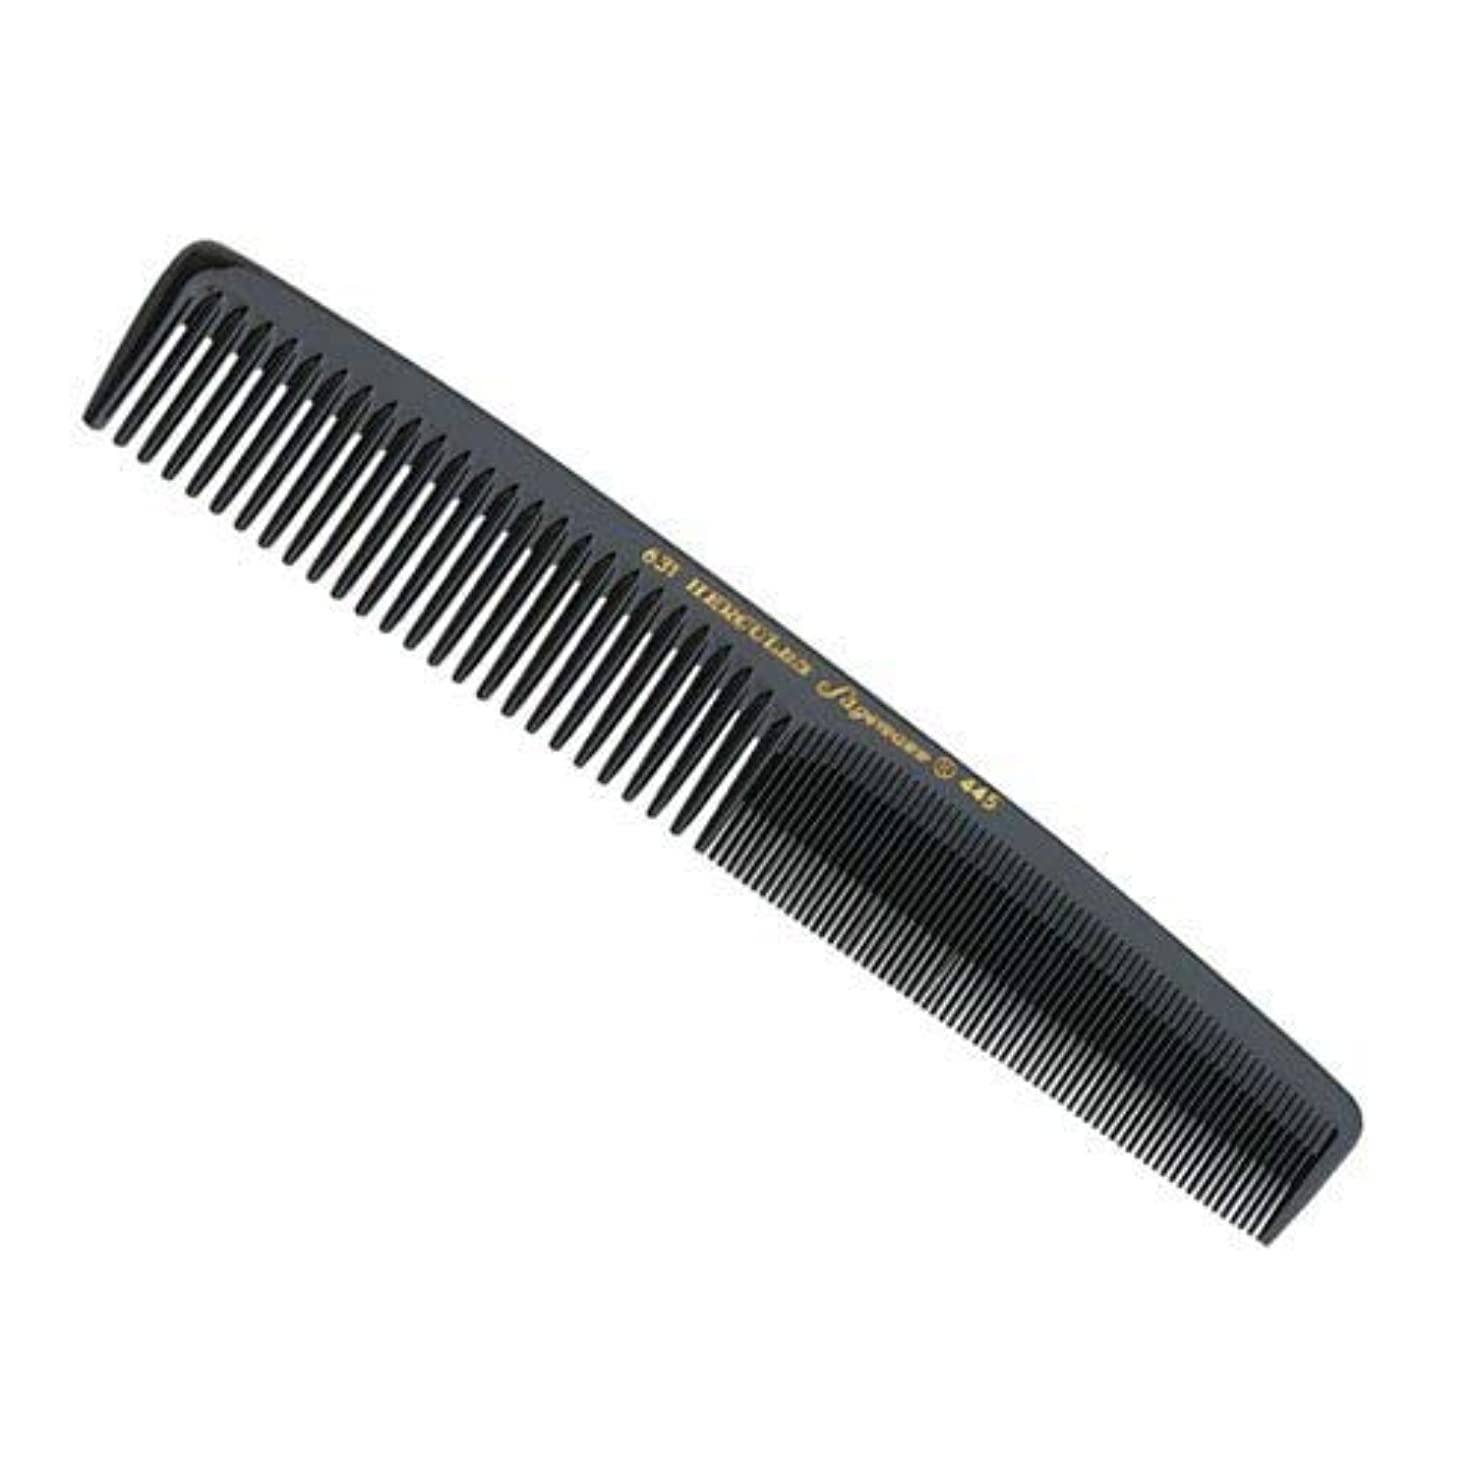 同志最も遠い事実上Hercules Sagemann Medium Waver Ladies Hair Comb, Length-17.8 cm [並行輸入品]